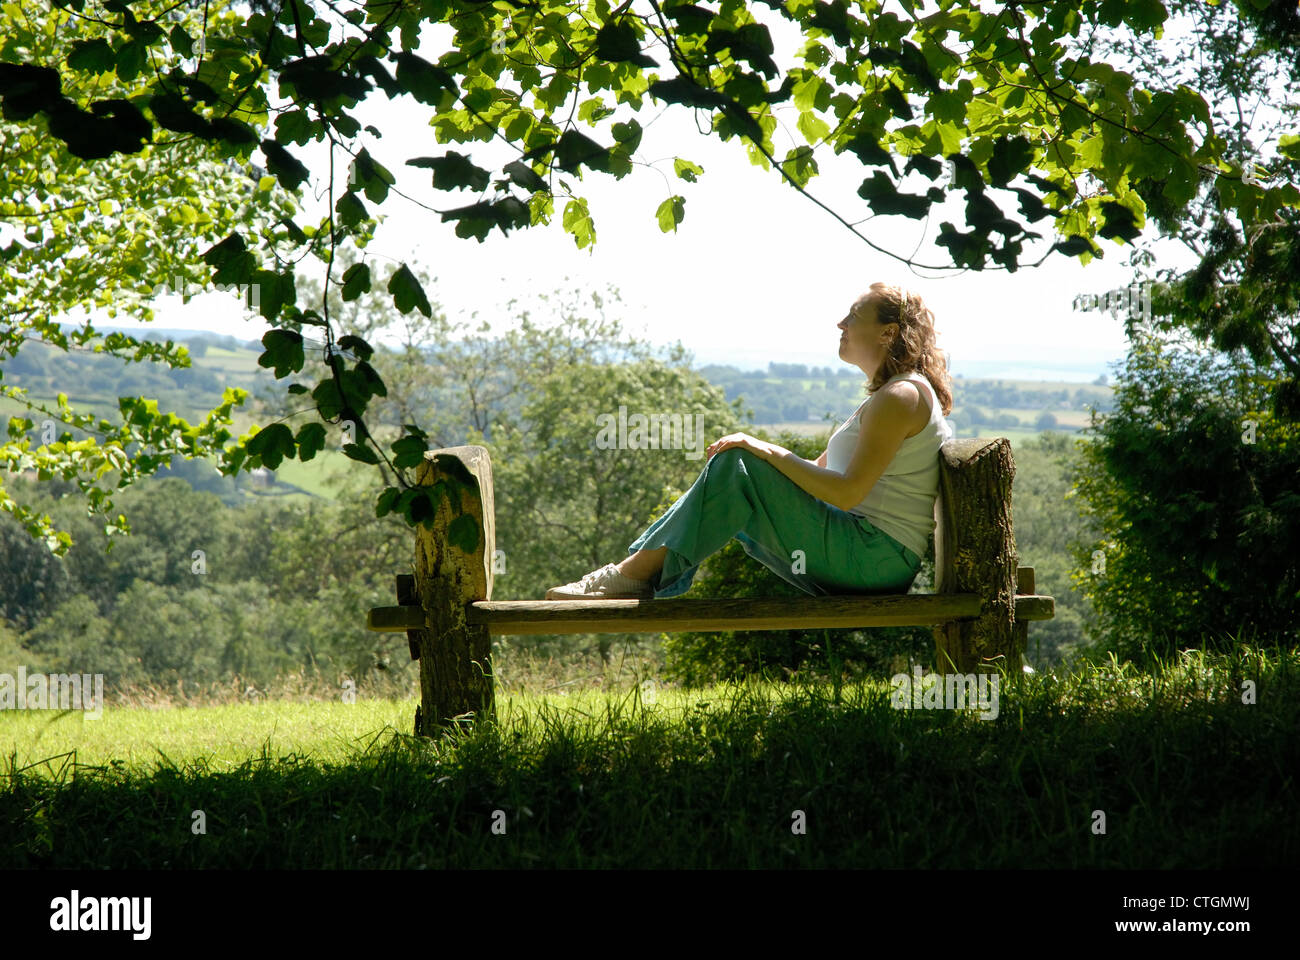 A woman relaxes in the sunshine on a summers day in Britain. - Stock Image